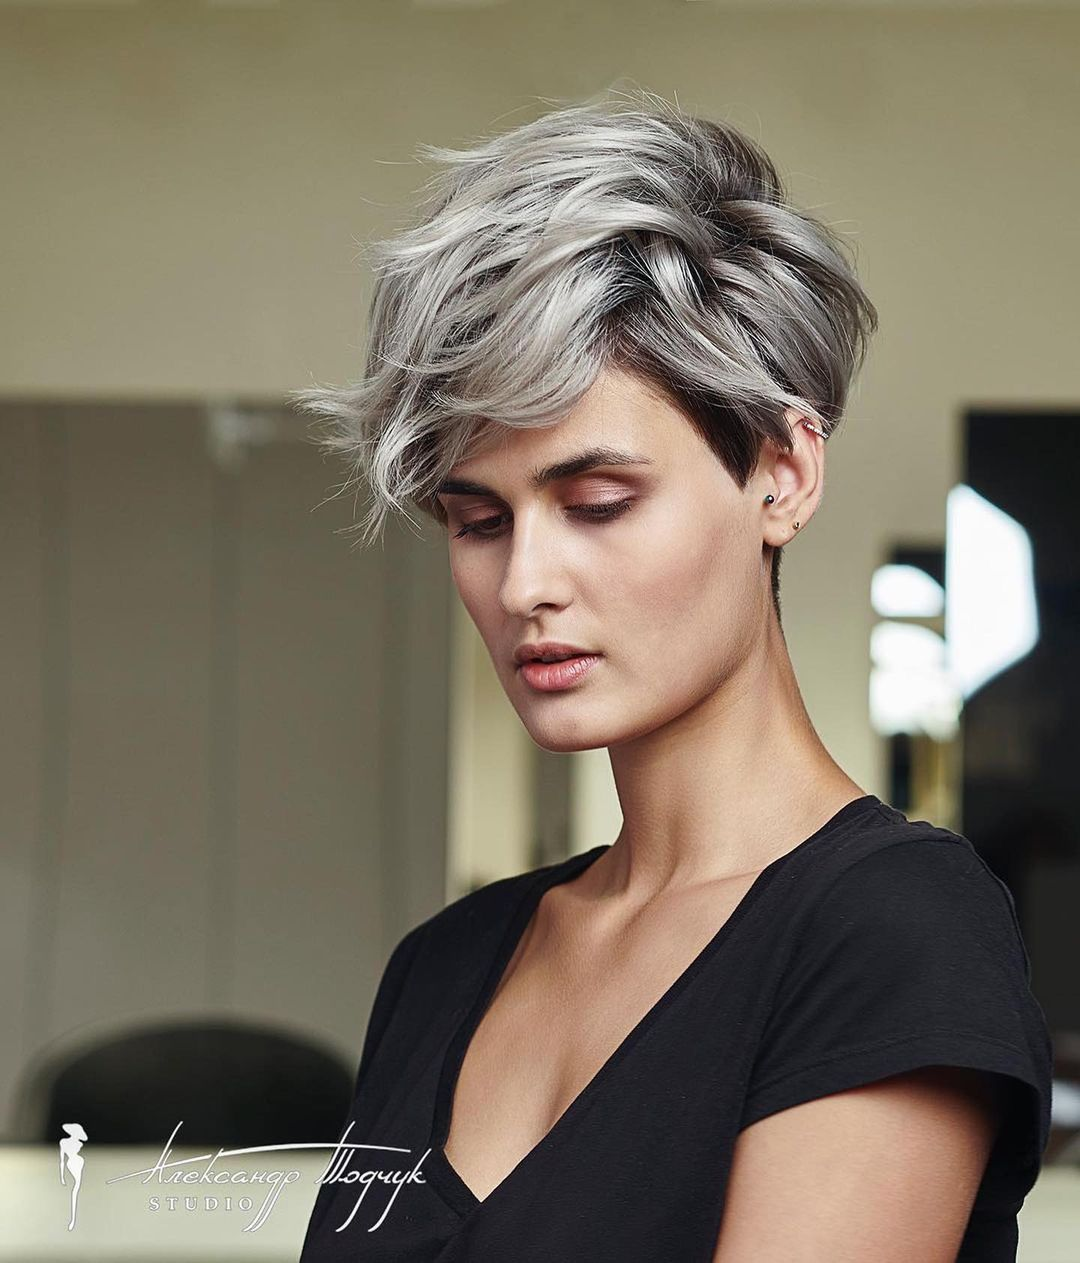 Stylish Short Pixie Cut and Color 2021 - Women Short Haircut Idea 2021 - PoPular Haircuts